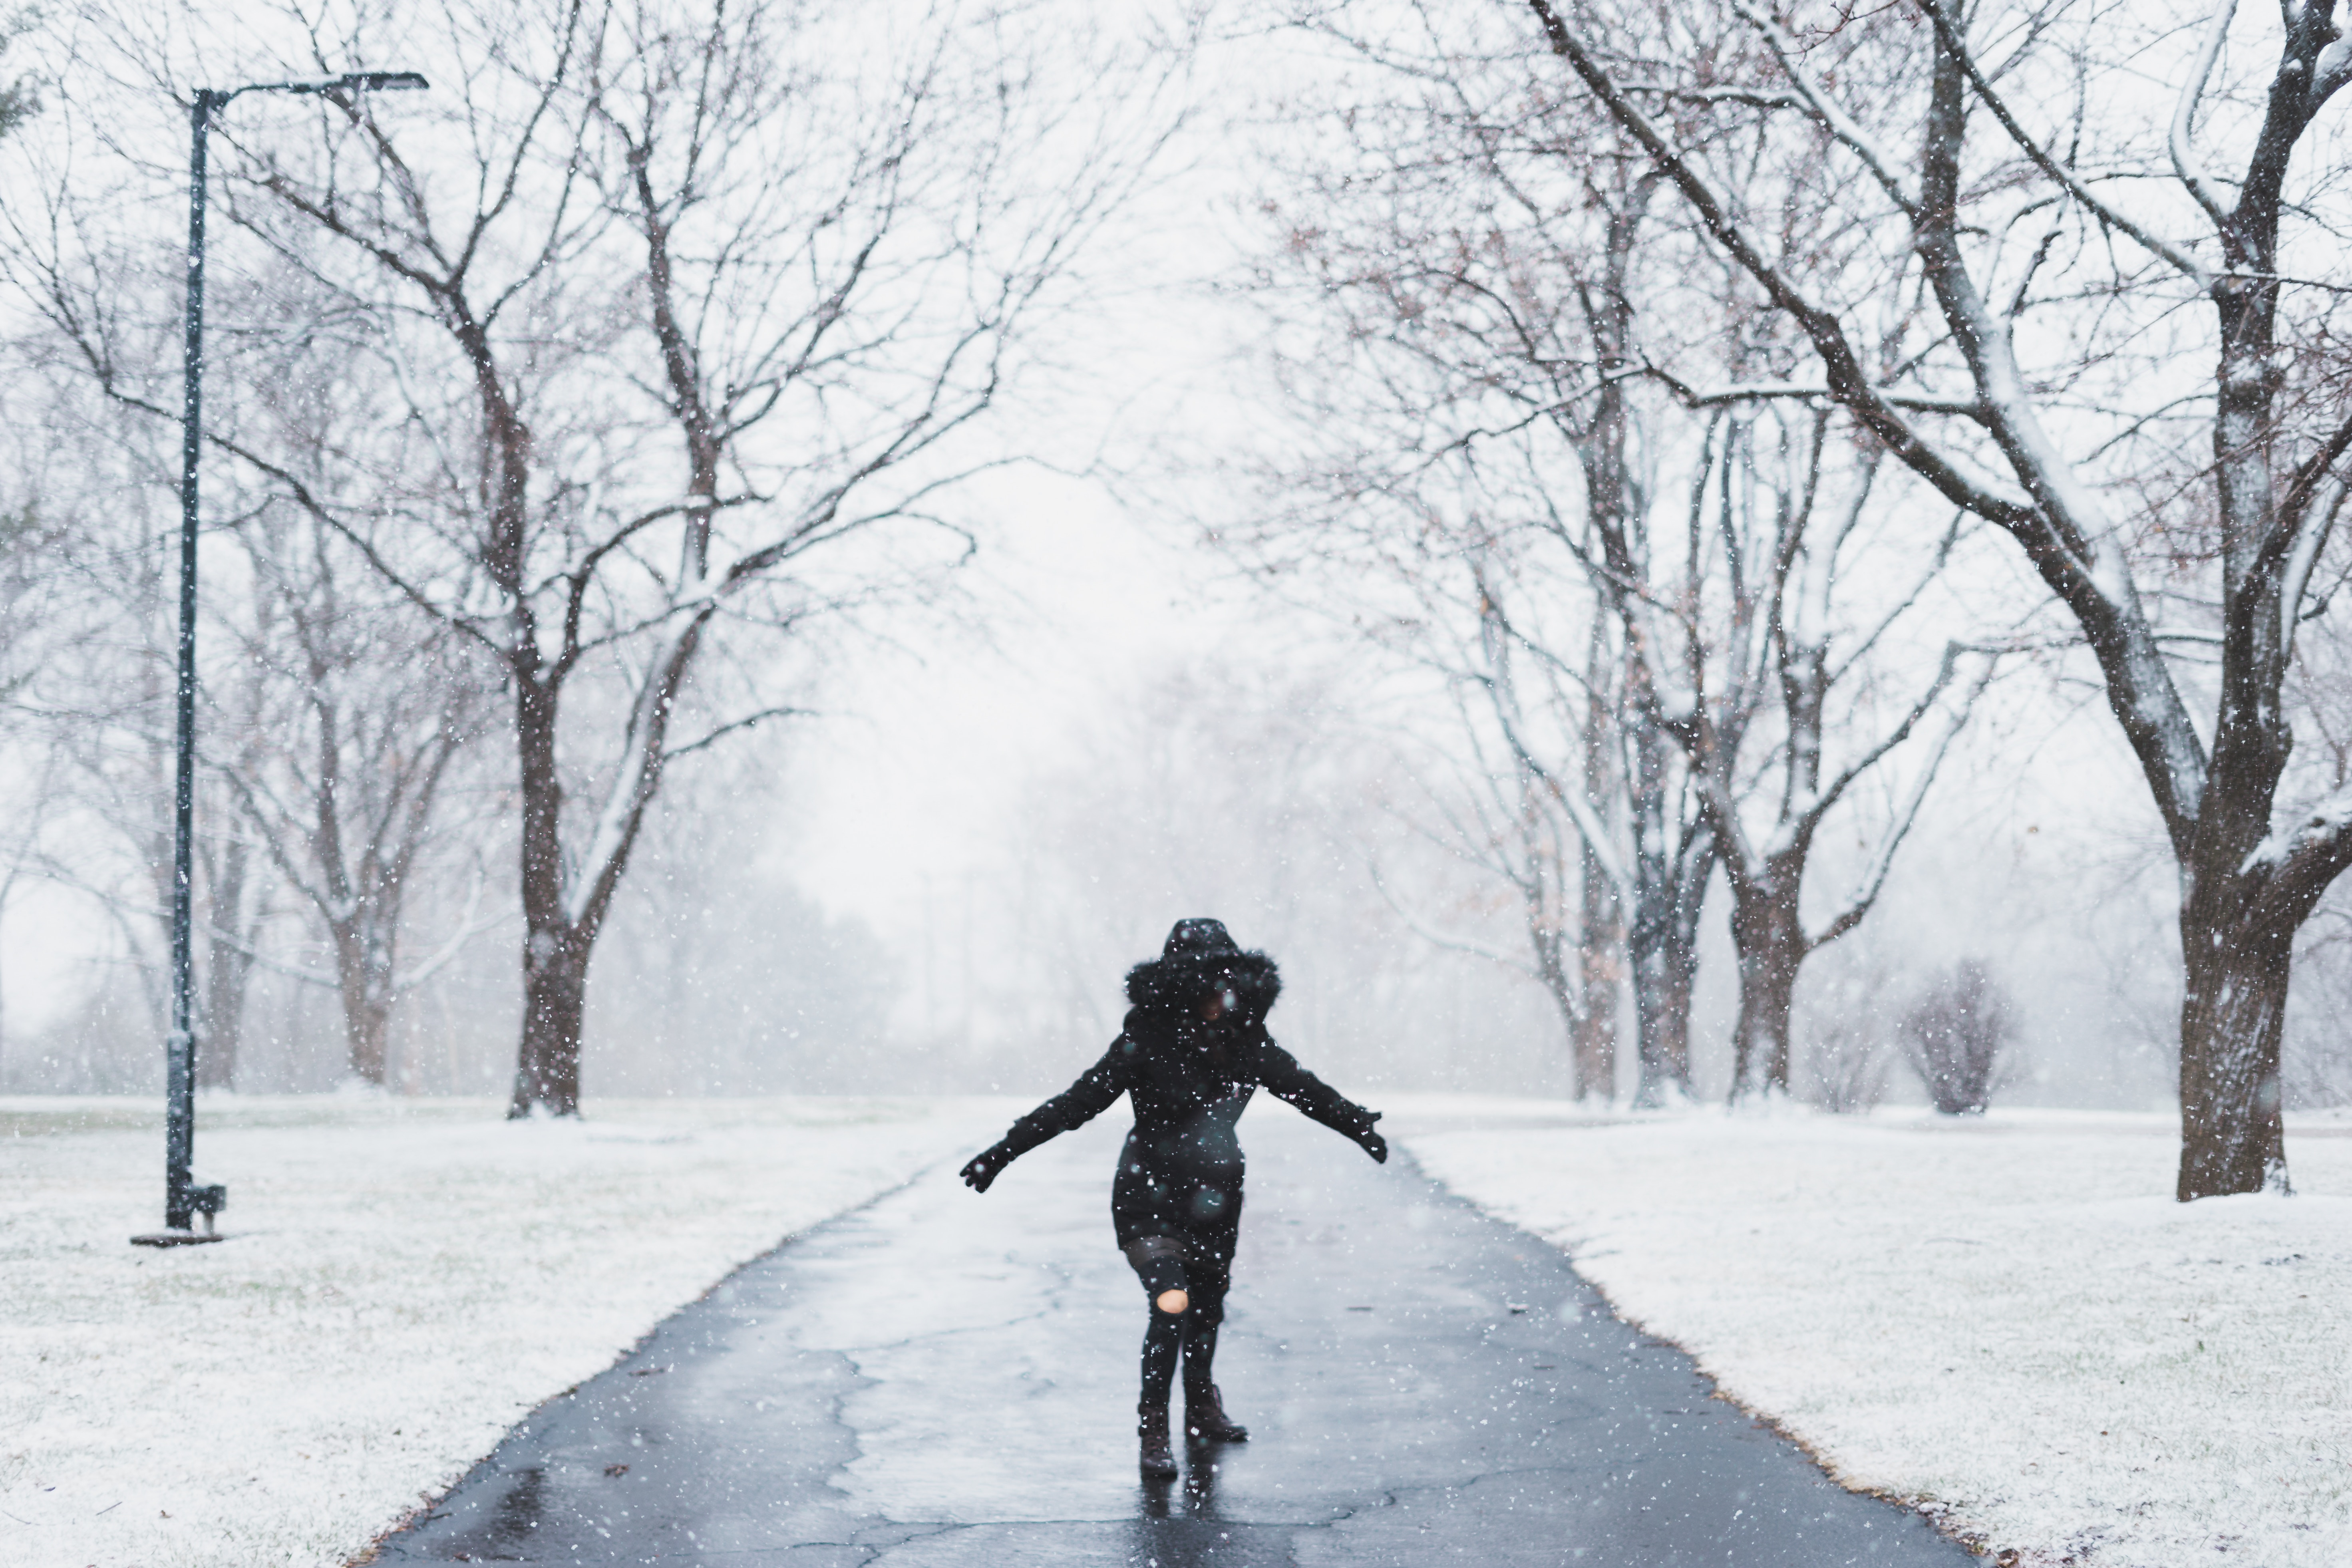 Surviving the winter storm Bomb Cyclone hits Northeast Photo by Aaron Lee on Unsplash